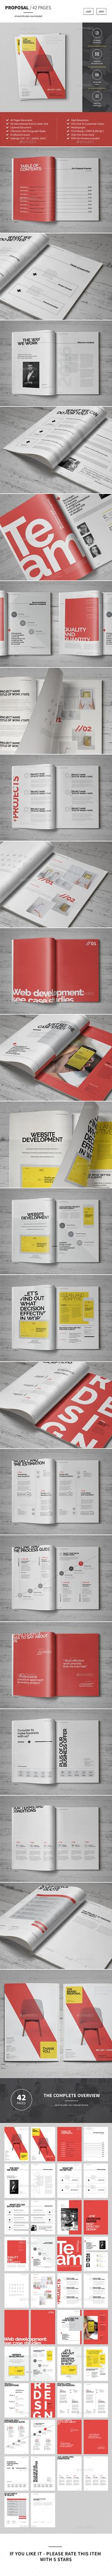 construction proposal templates%0A Sugercube InDesign Proposal Template for Business   Proposal templates   Proposals and Template